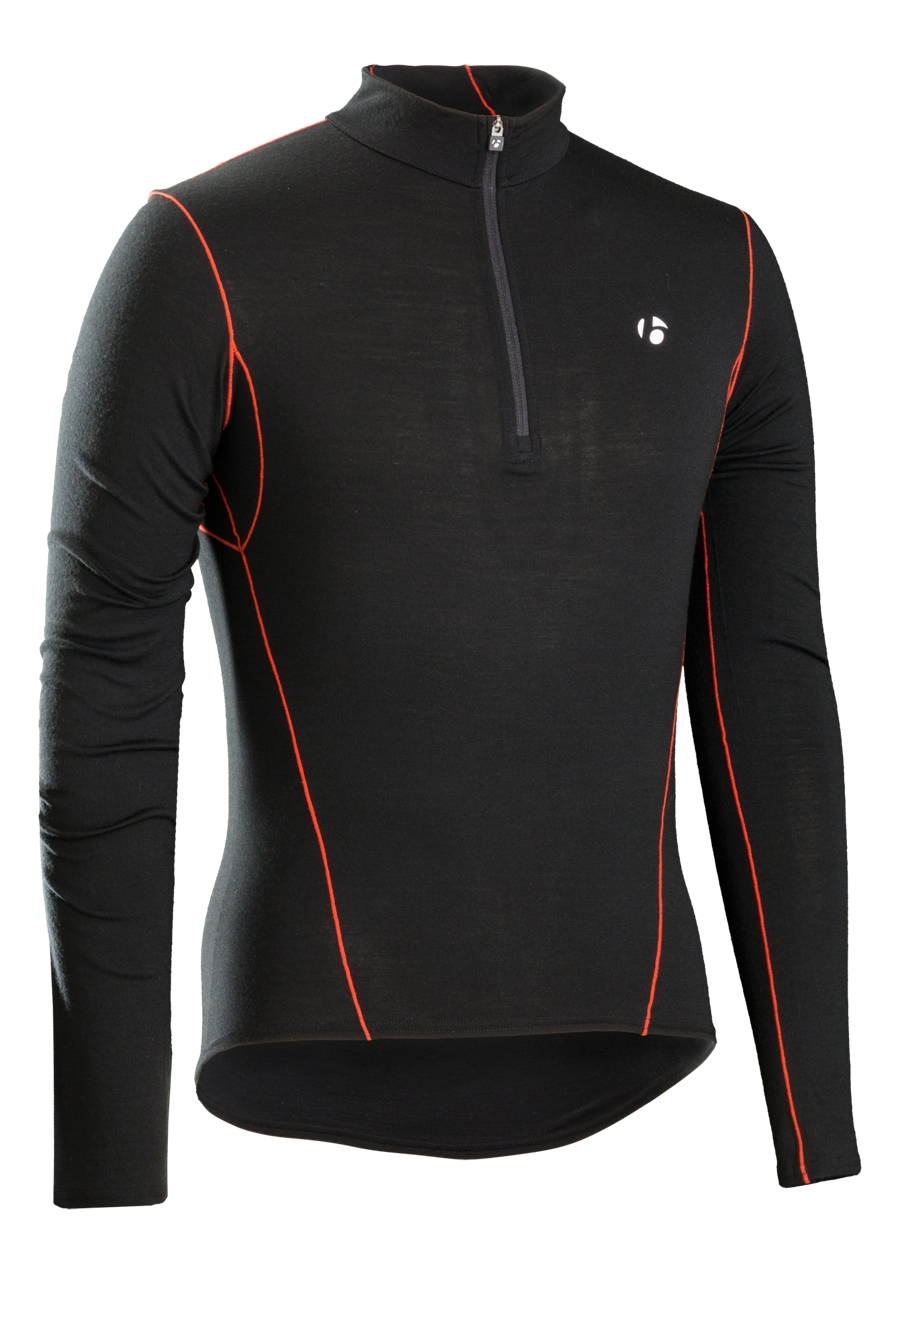 Bontrager Funktionswäsche B3 1/4 Zip Long Sleeve M Black - Bontrager Funktionswäsche B3 1/4 Zip Long Sleeve M Black